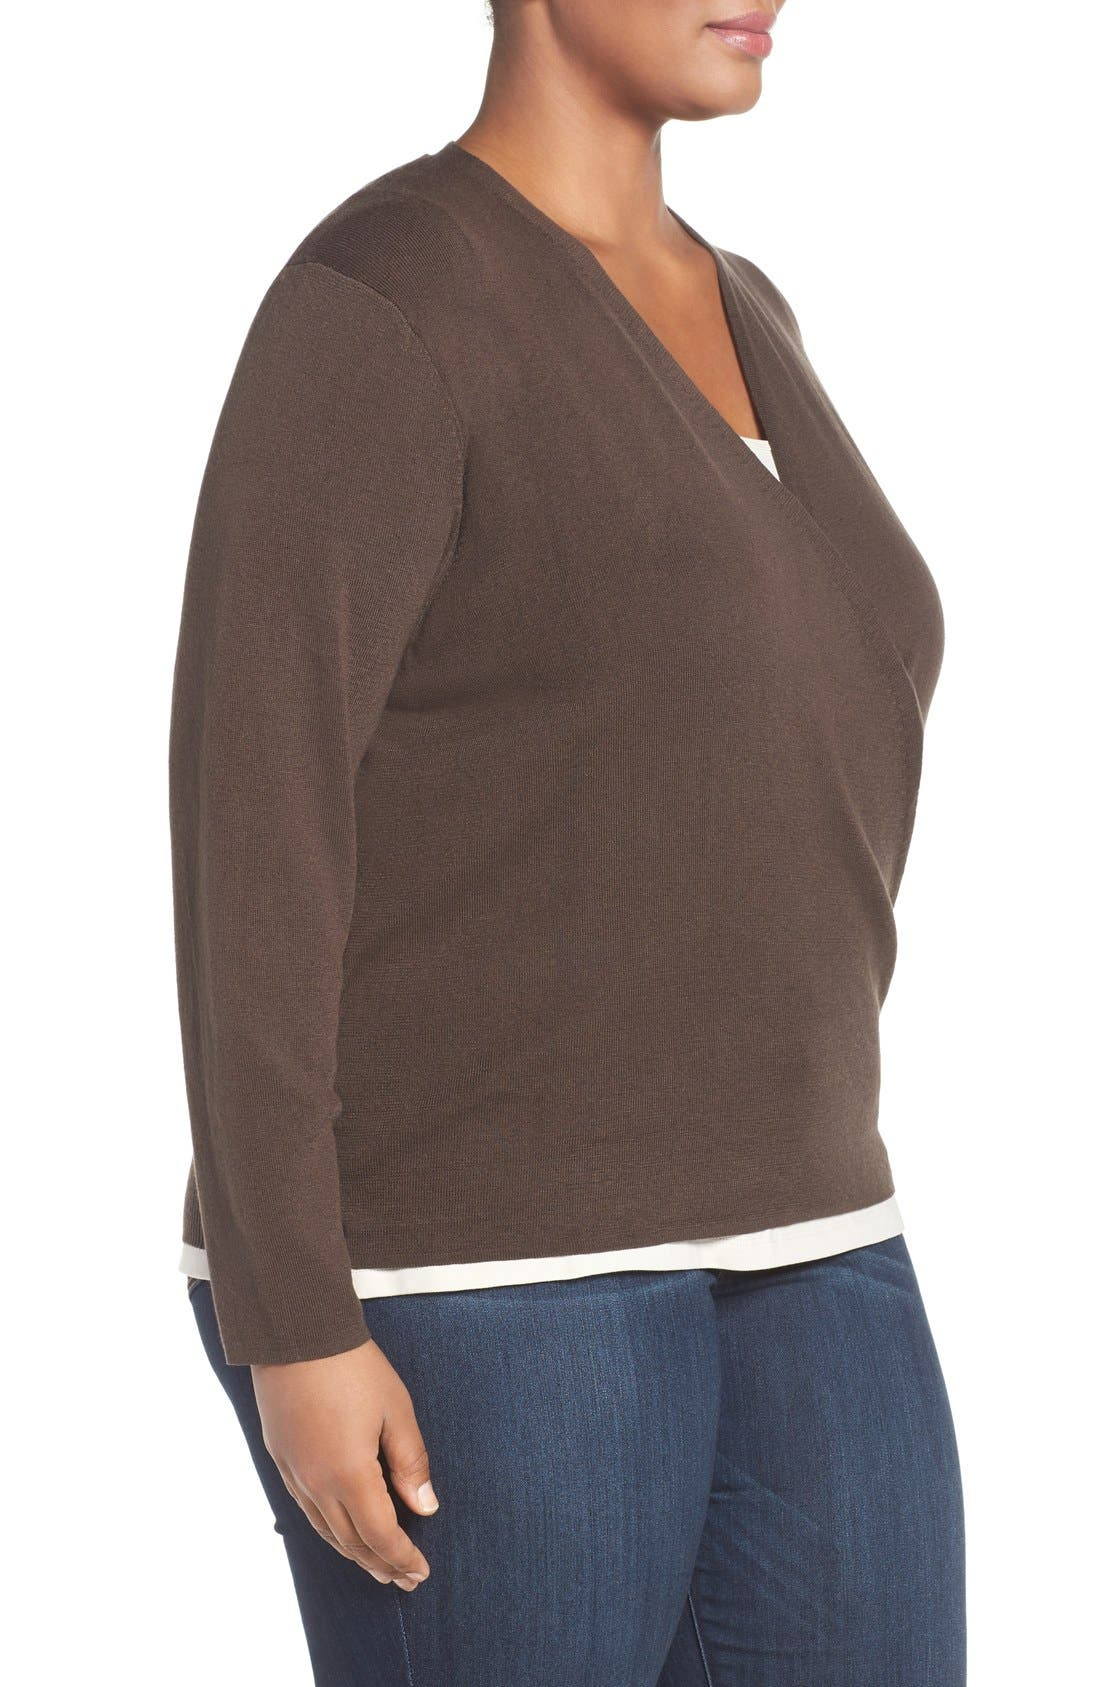 '4-Way' Three Quarter Sleeve Convertible Cardigan,                             Alternate thumbnail 4, color,                             River Rock